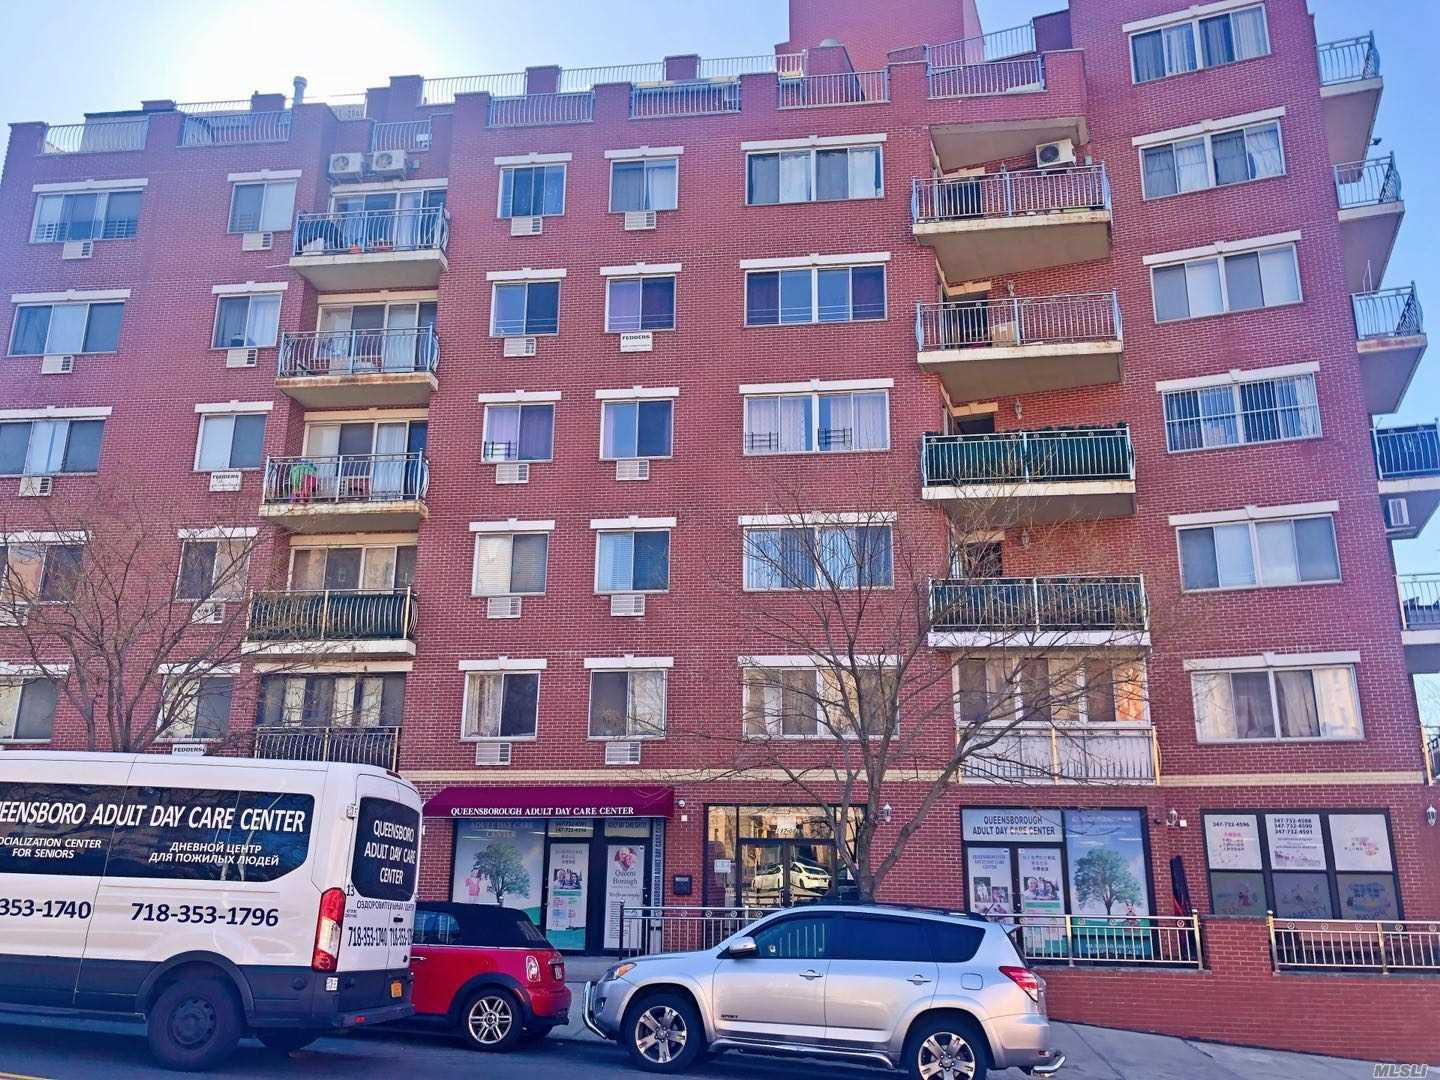 Beautiful 2 bedrooms condo located at Flushing. Facing south, has washer and dryer in unit, wood floor, private balcony. close to school, supermarket, movie theater. Bus Q25 / Q34 to Flushing Main street. QM 2, QM20 to Manhattan. won't last.